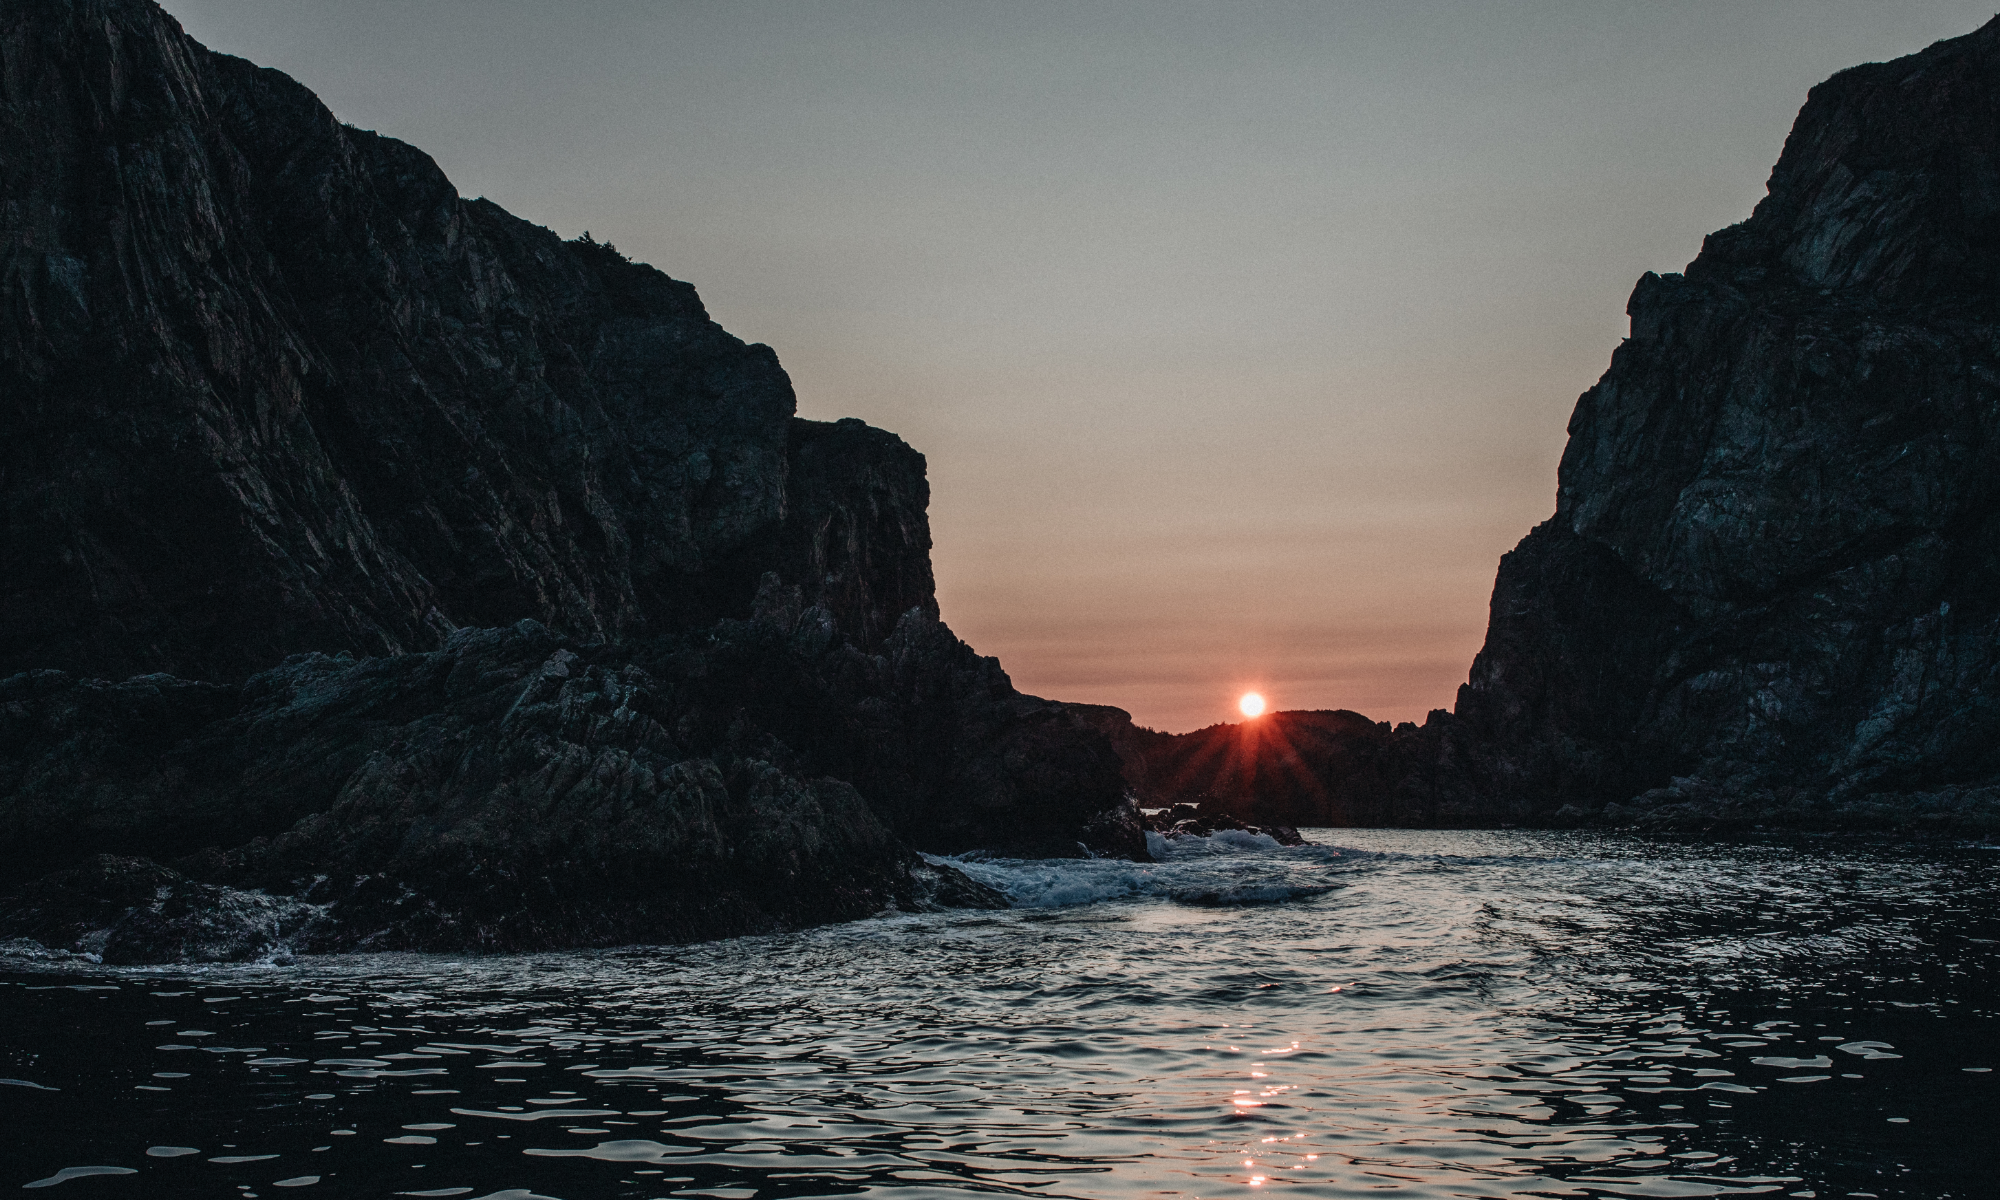 Rocky cliffs, water and sun